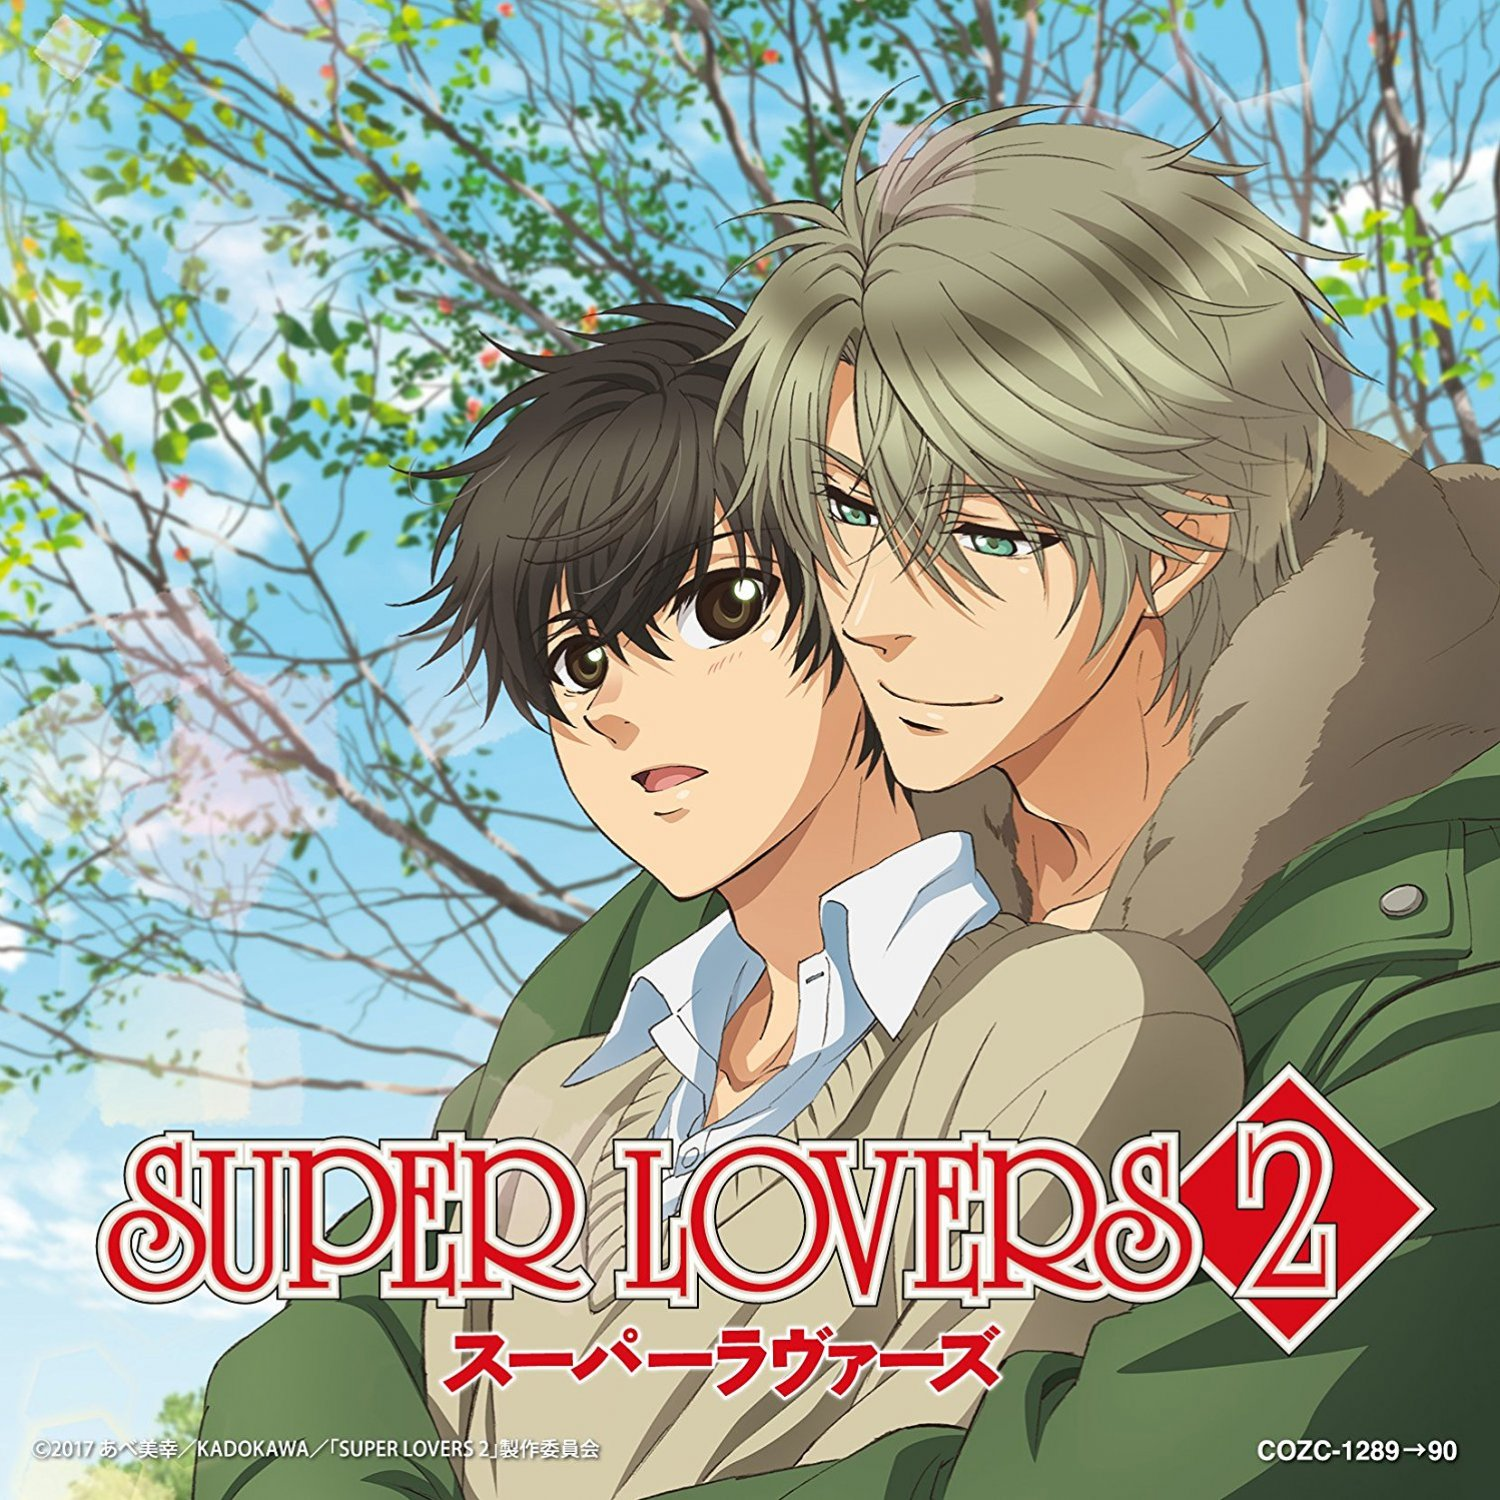 Hare Iro Melody (Super Lovers 2 Intro Theme) [CD+DVD Limited Edition ...